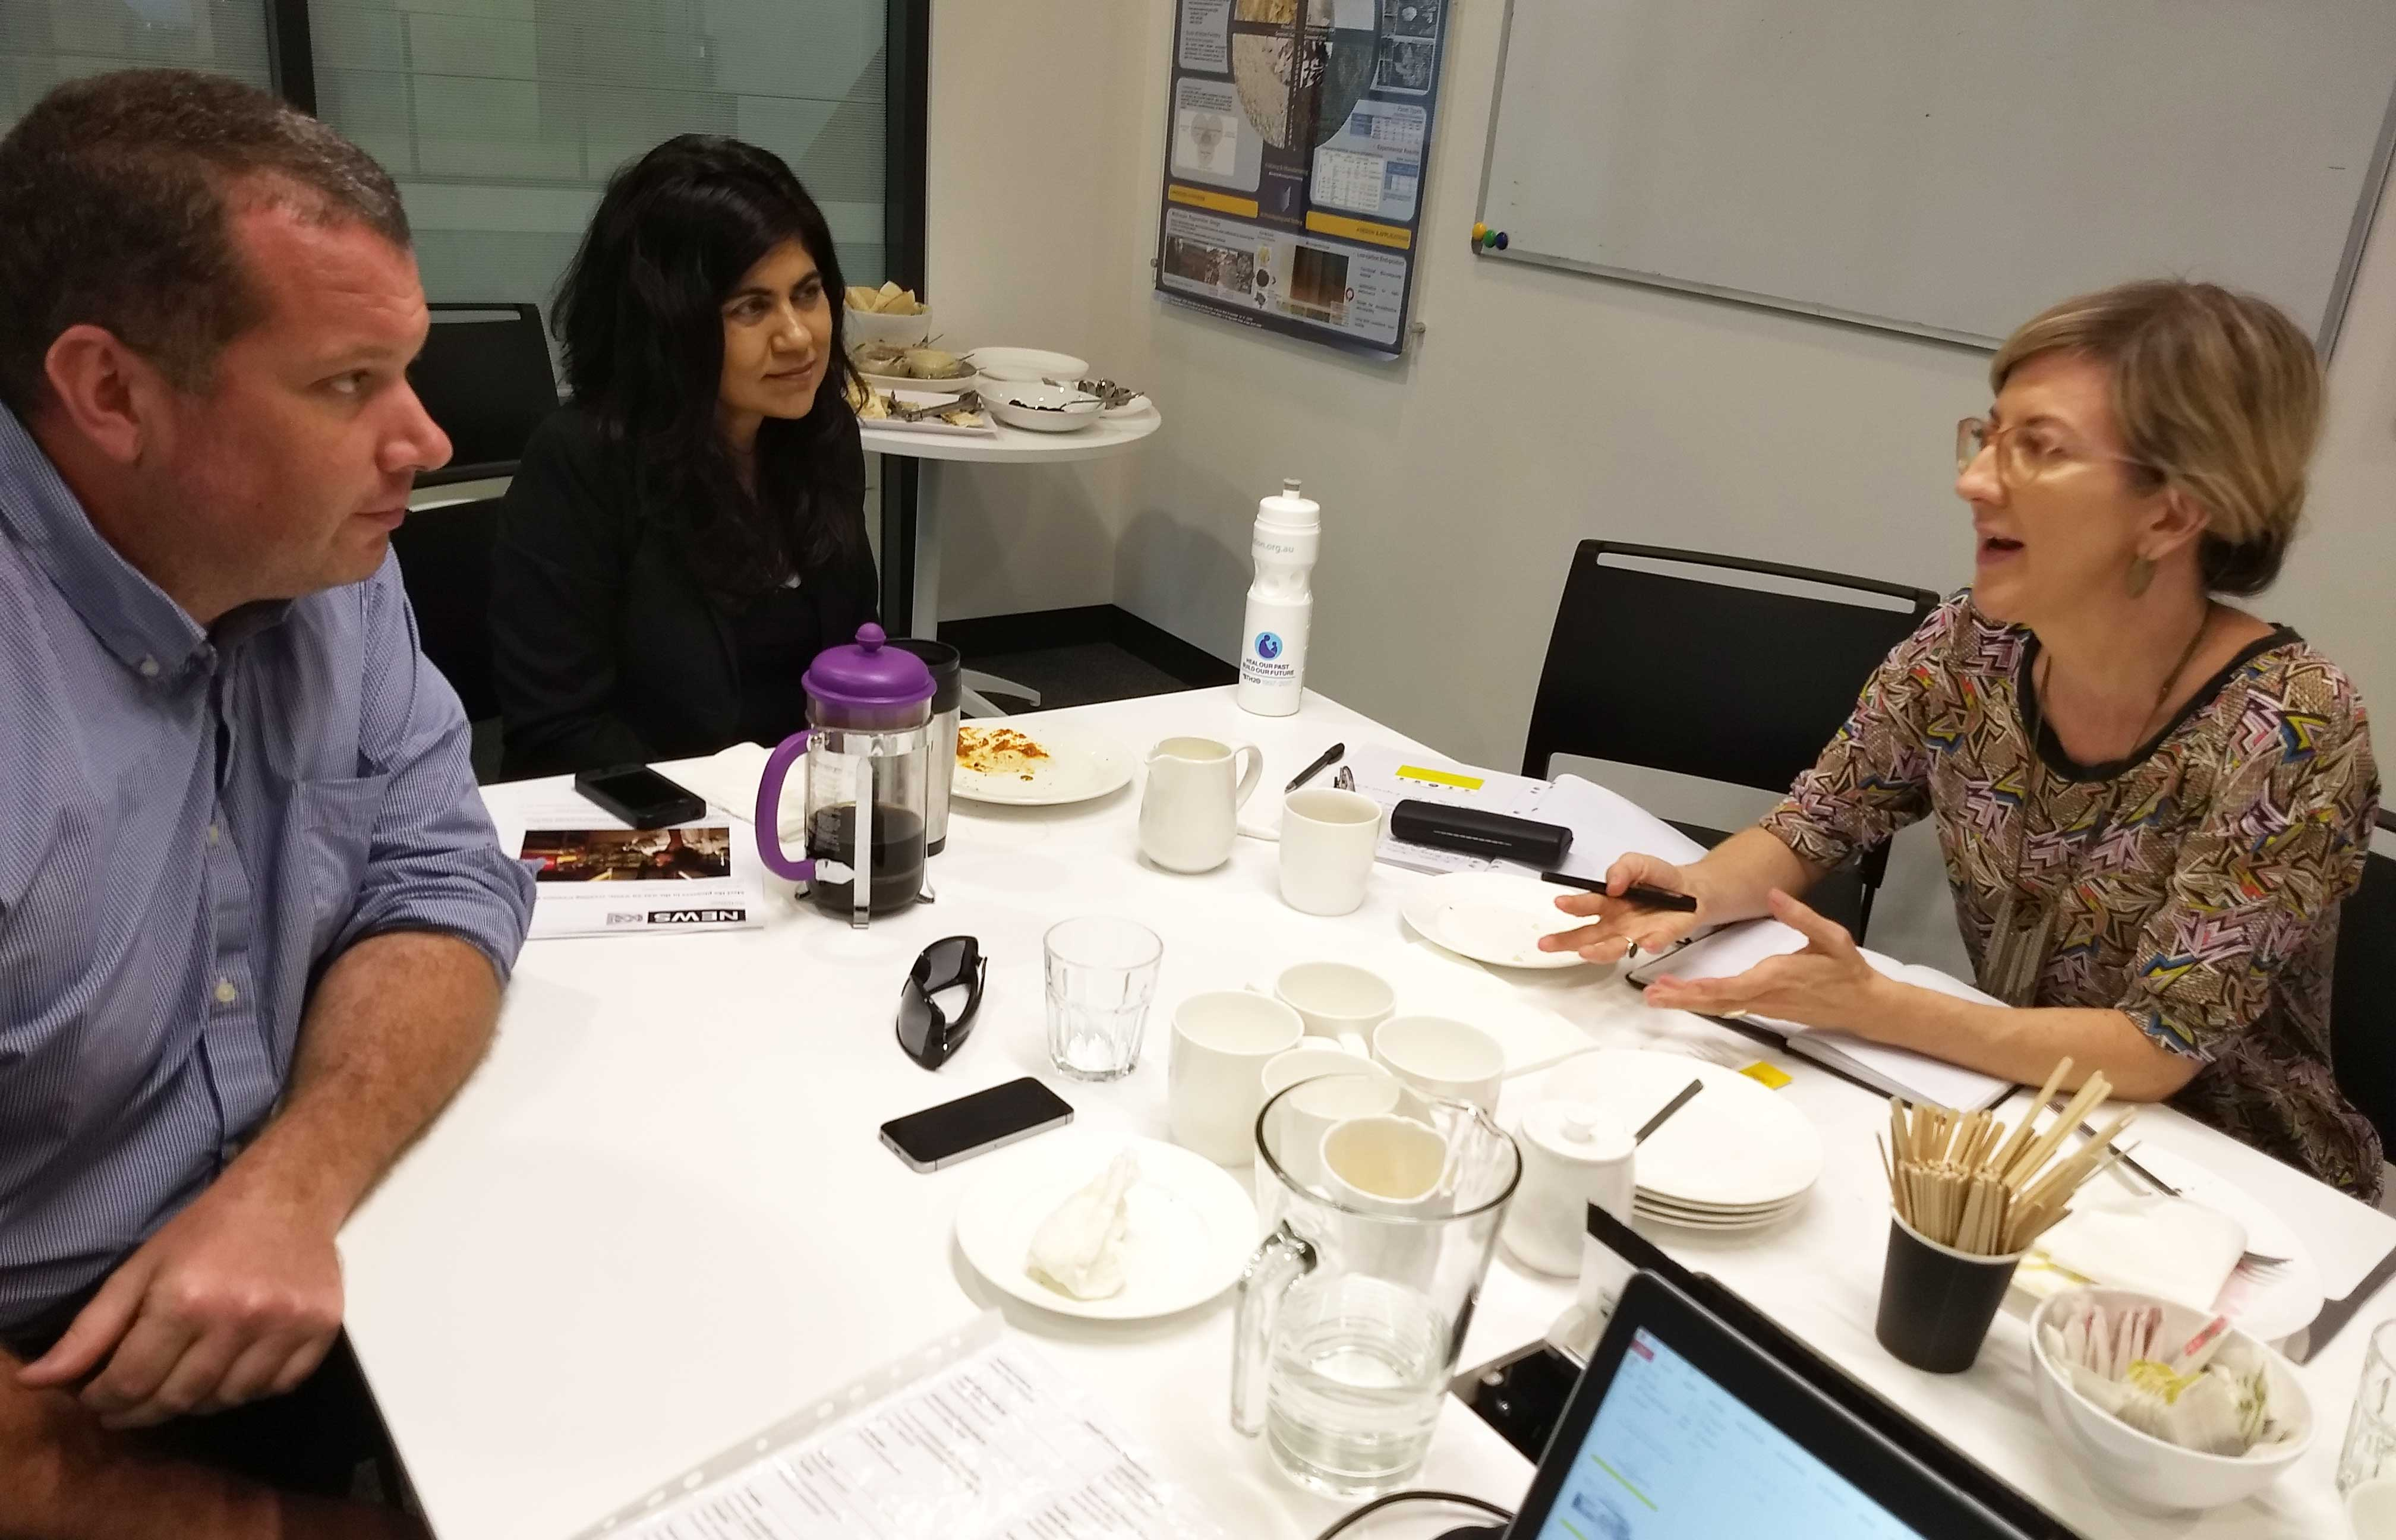 Tom Dobbie, Veena Sahajwalla, Ruth McCausland at UNSW Sm@RT Centre January 2018